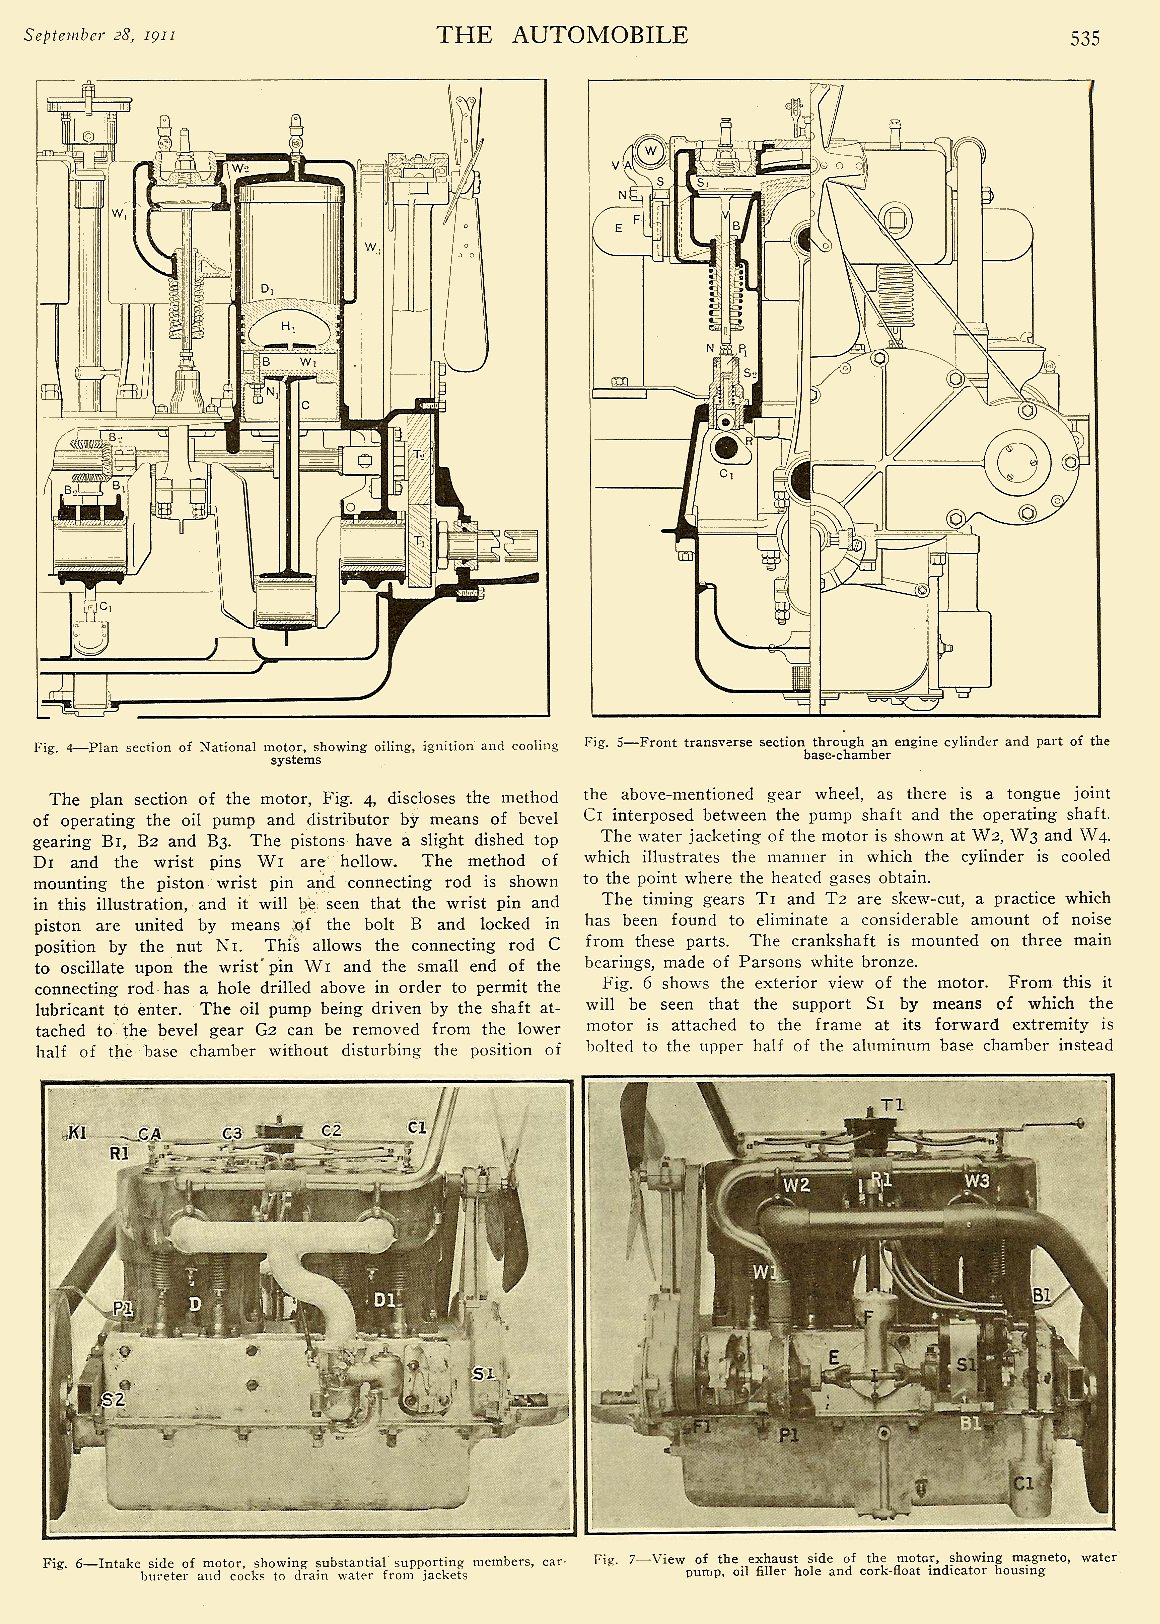 """1911 9 28 National """"Details of National Construction"""" THE AUTOMOBILE Vol. 25 No. 13 September 28, 1911 9″x12″ page 535"""